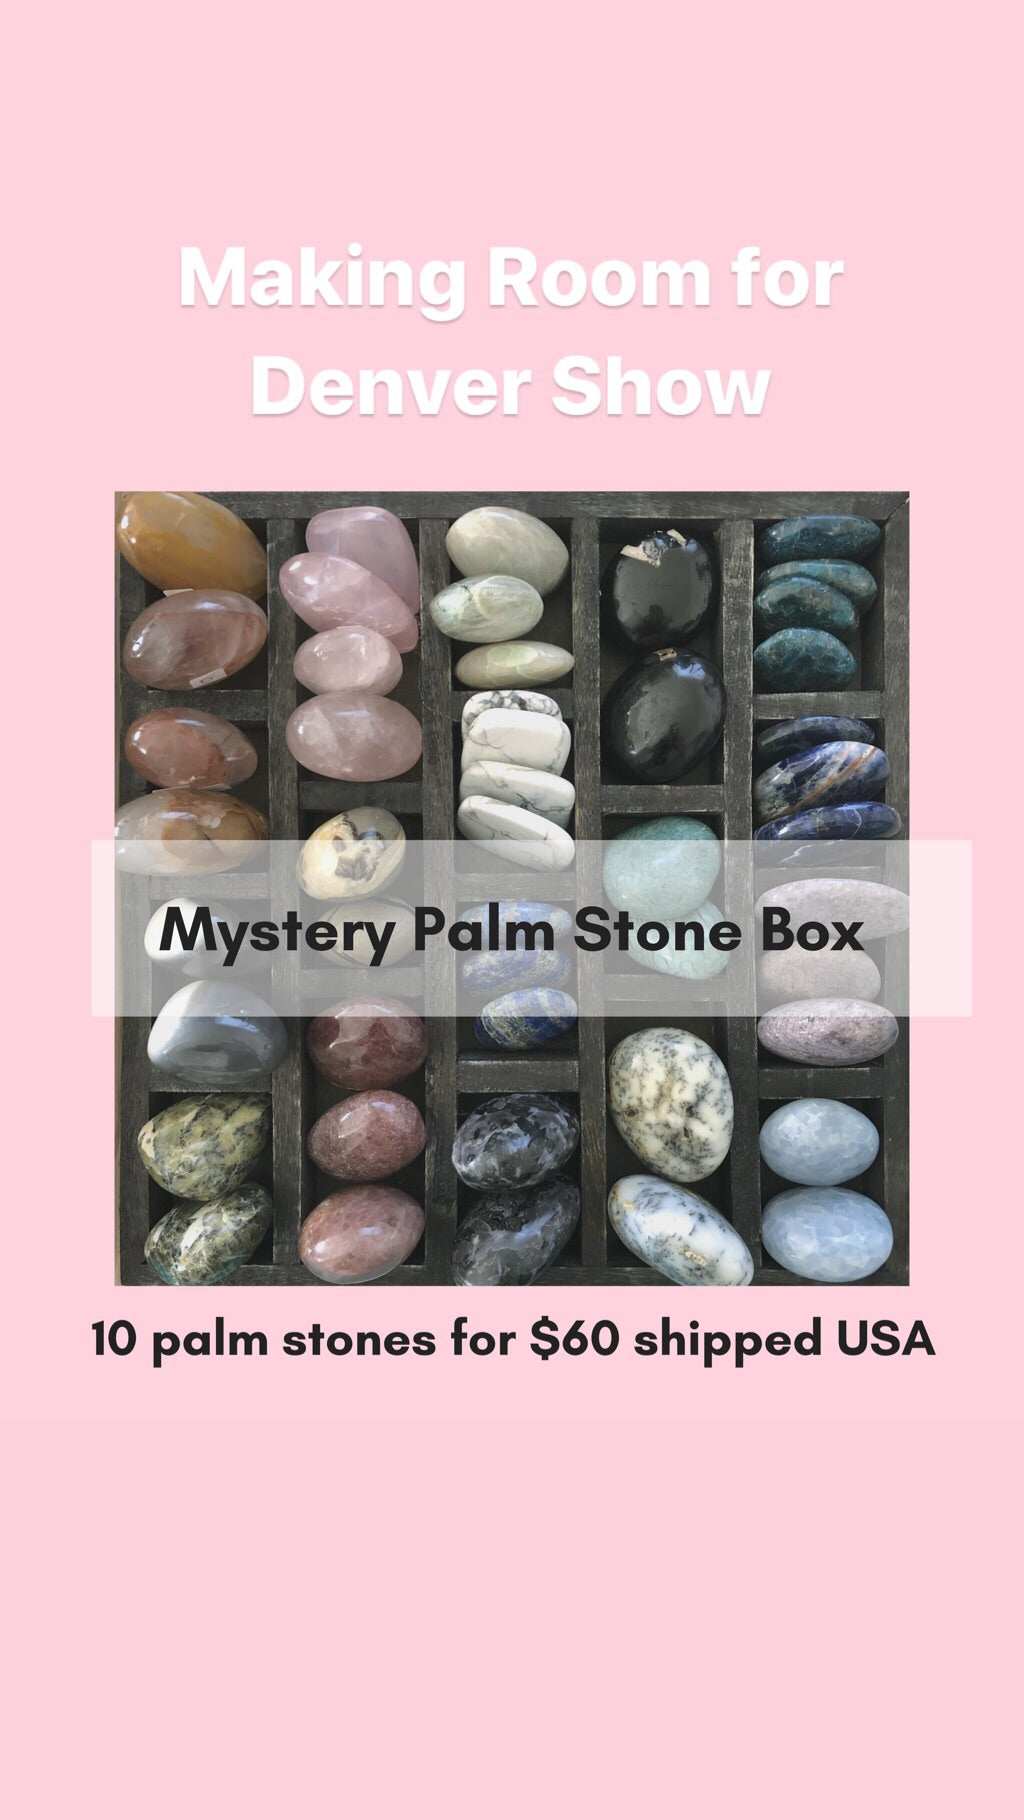 Mystery Box - Random pick 10 palm stones for $60 - The7directions